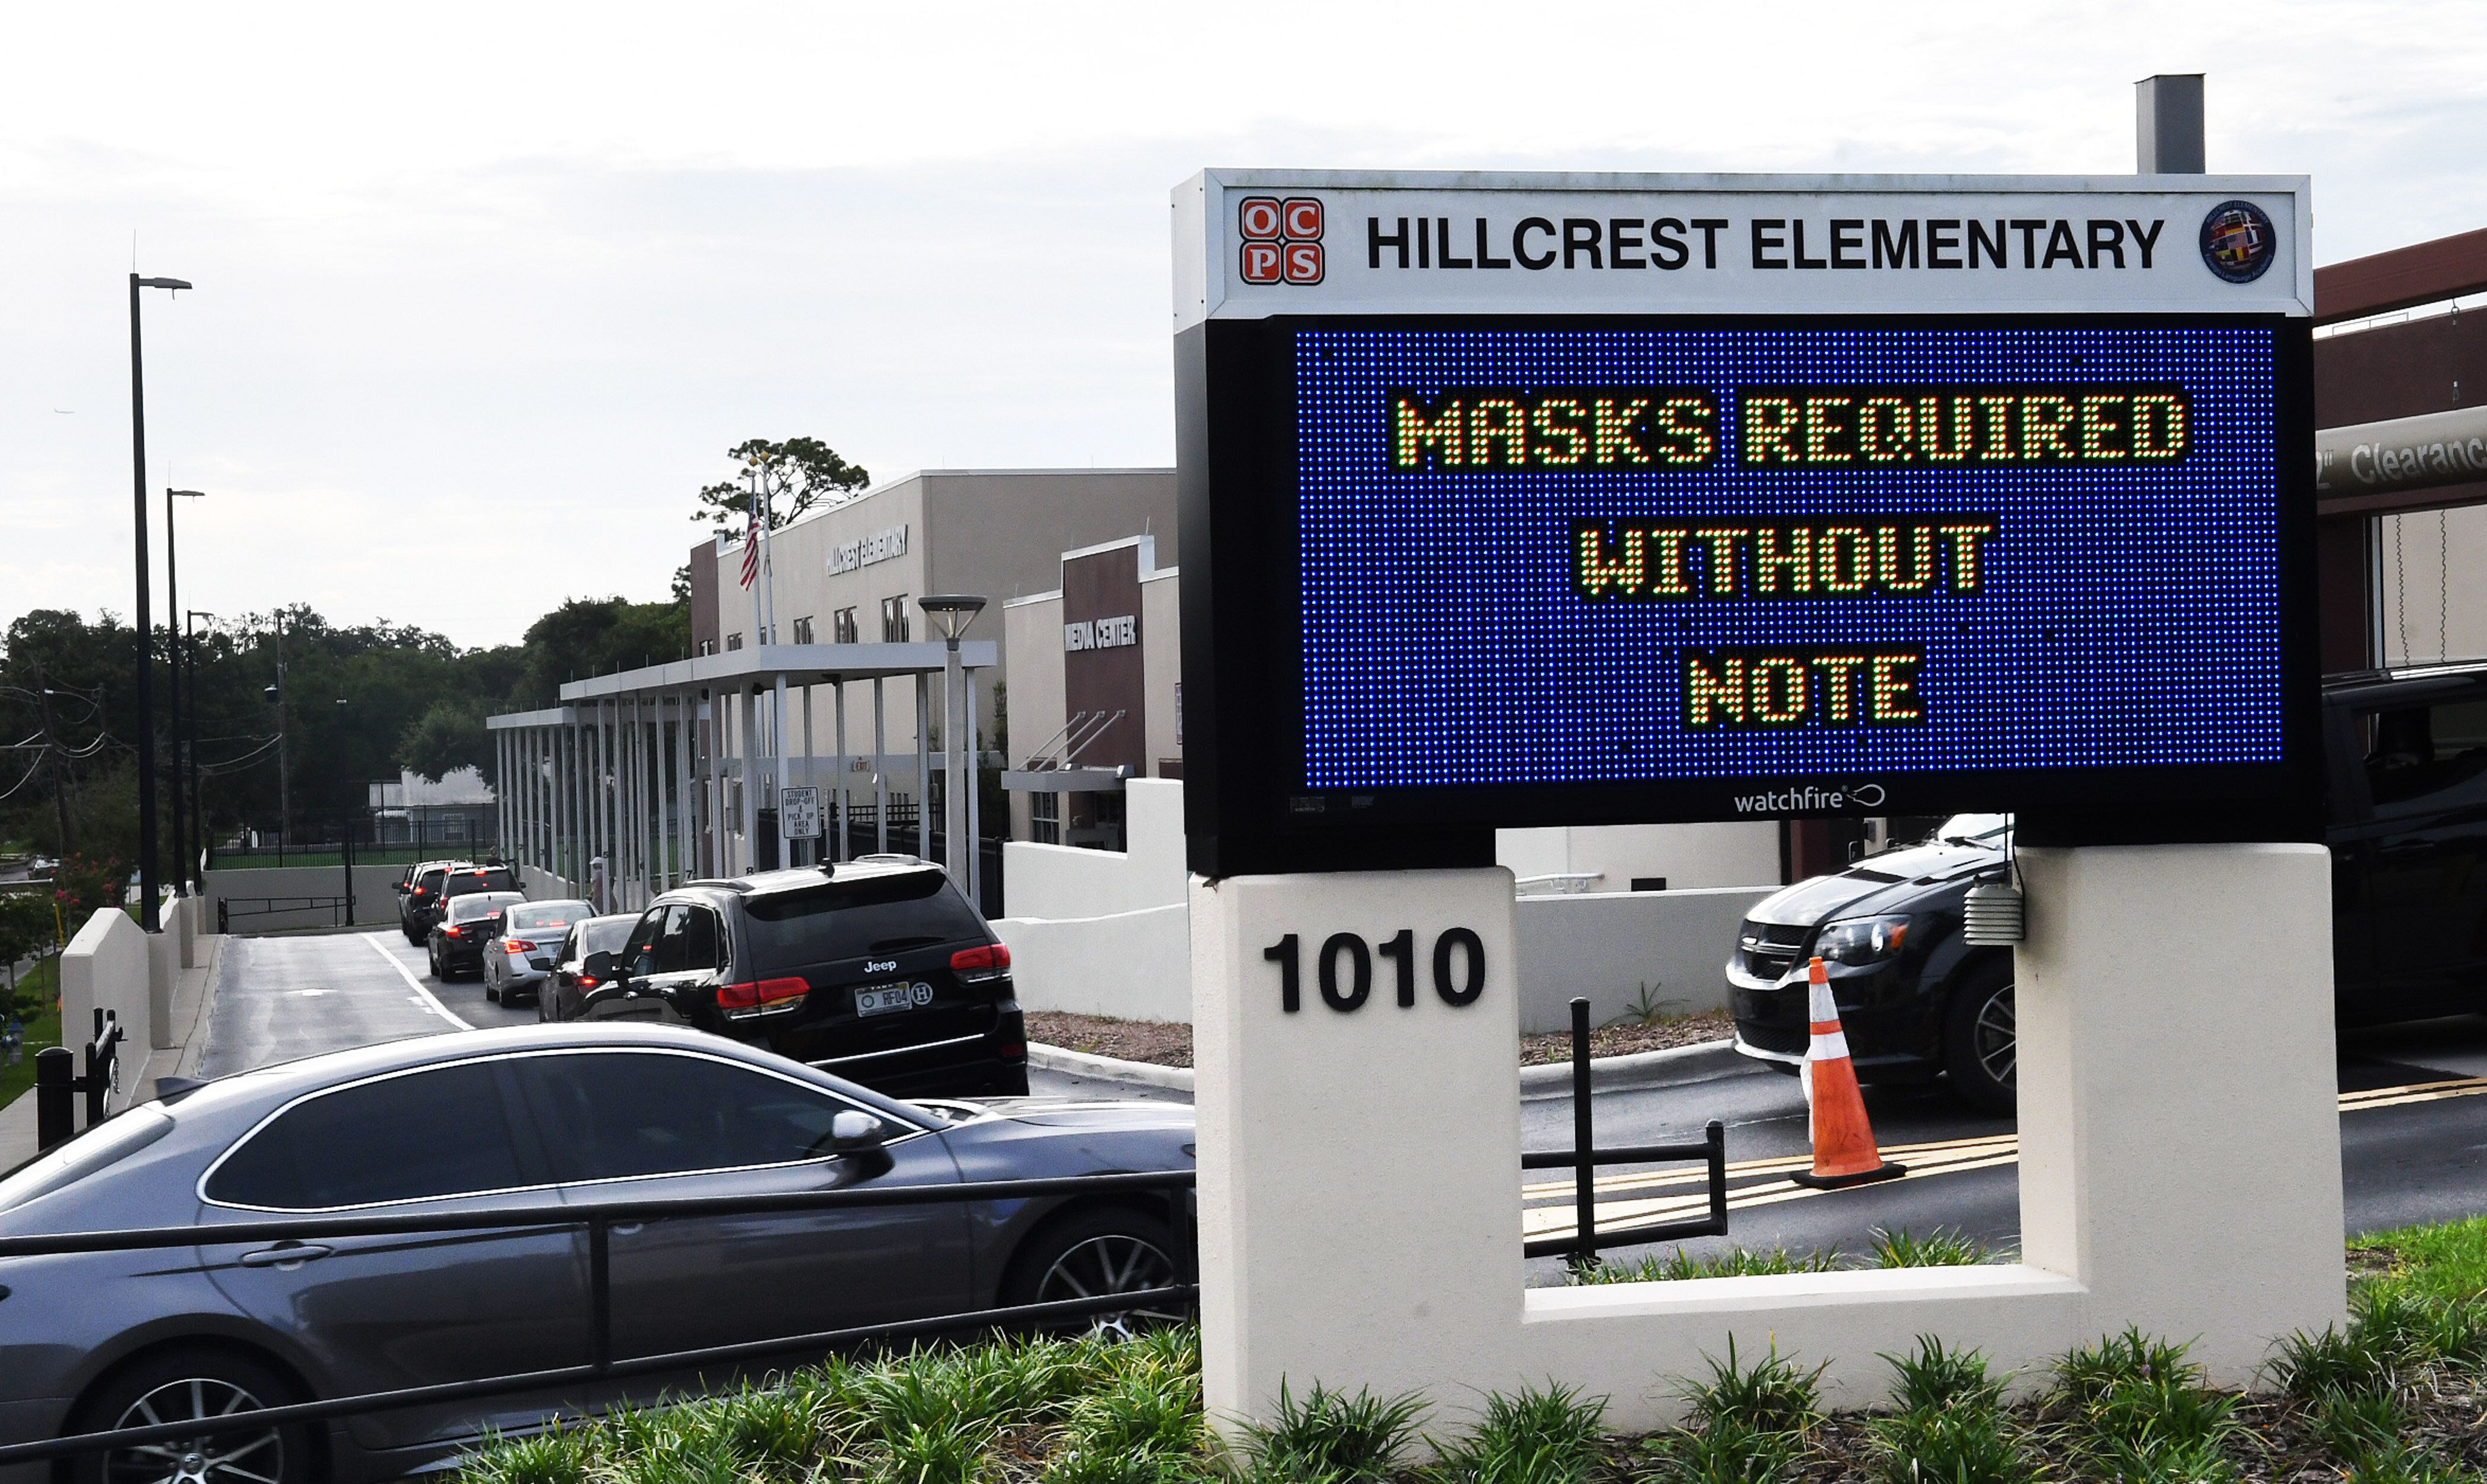 On Aug. 16, parents drop their kids off at Hillcrest Elementary school in Orlando with a sign at the entrance advising for th